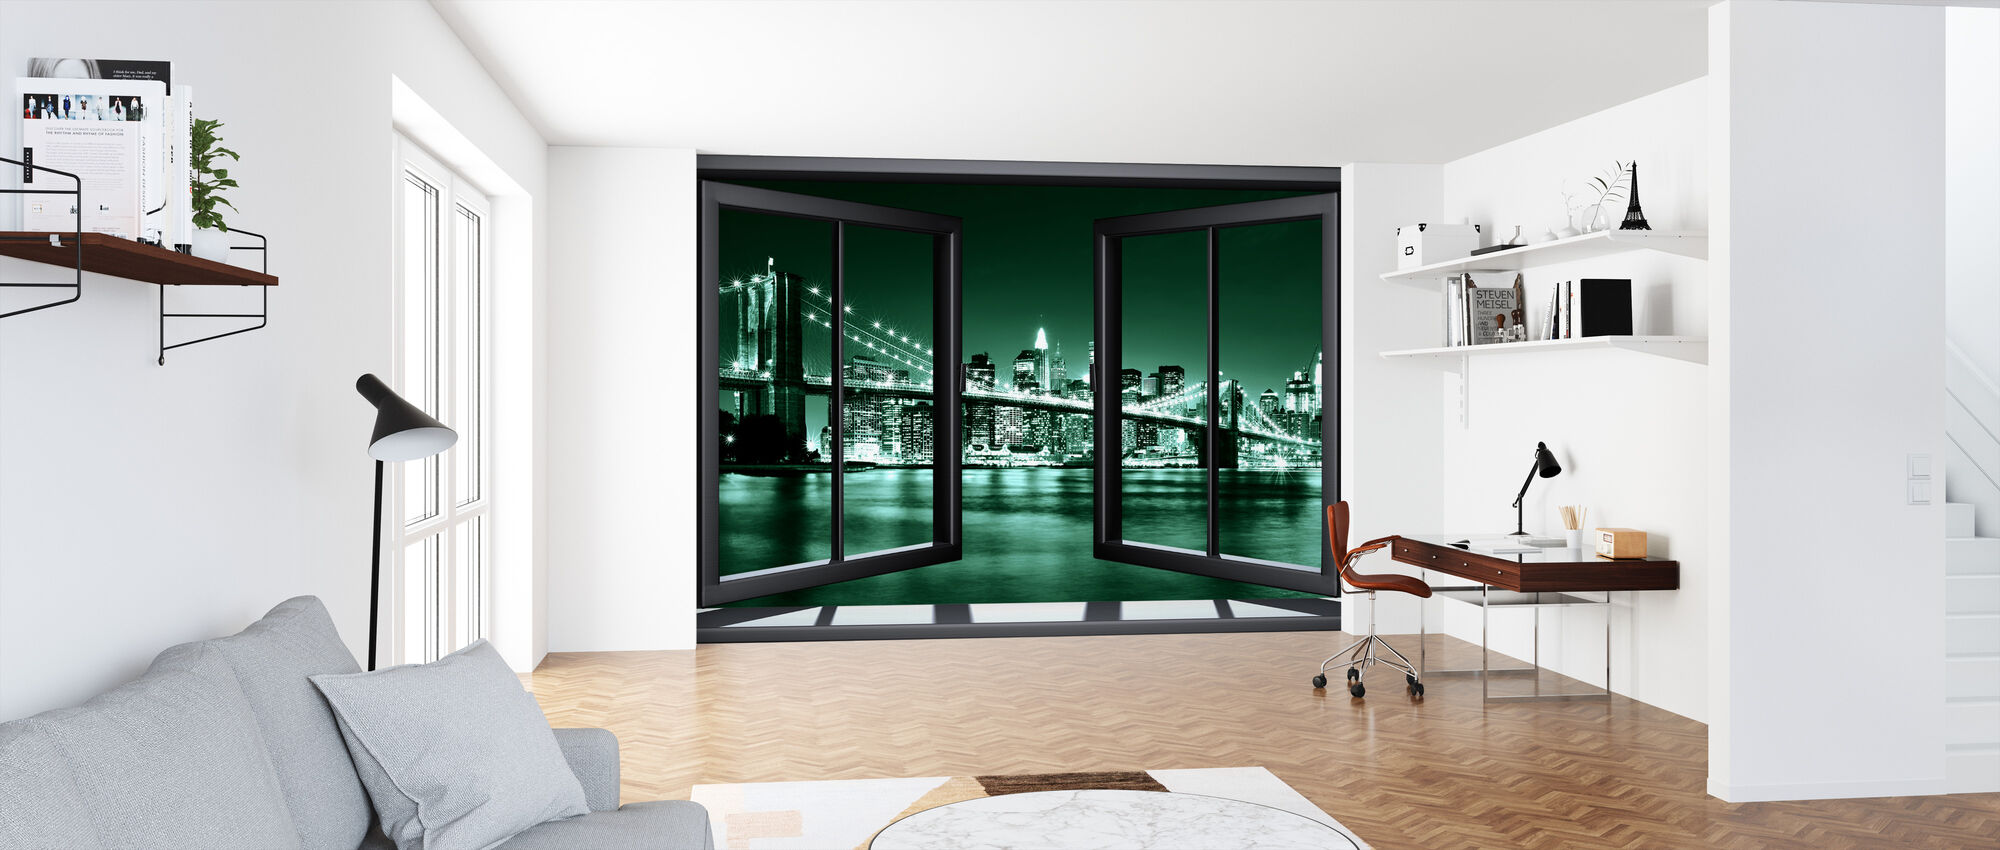 Brooklyn brug door raam - groen - Behang - Kantoor